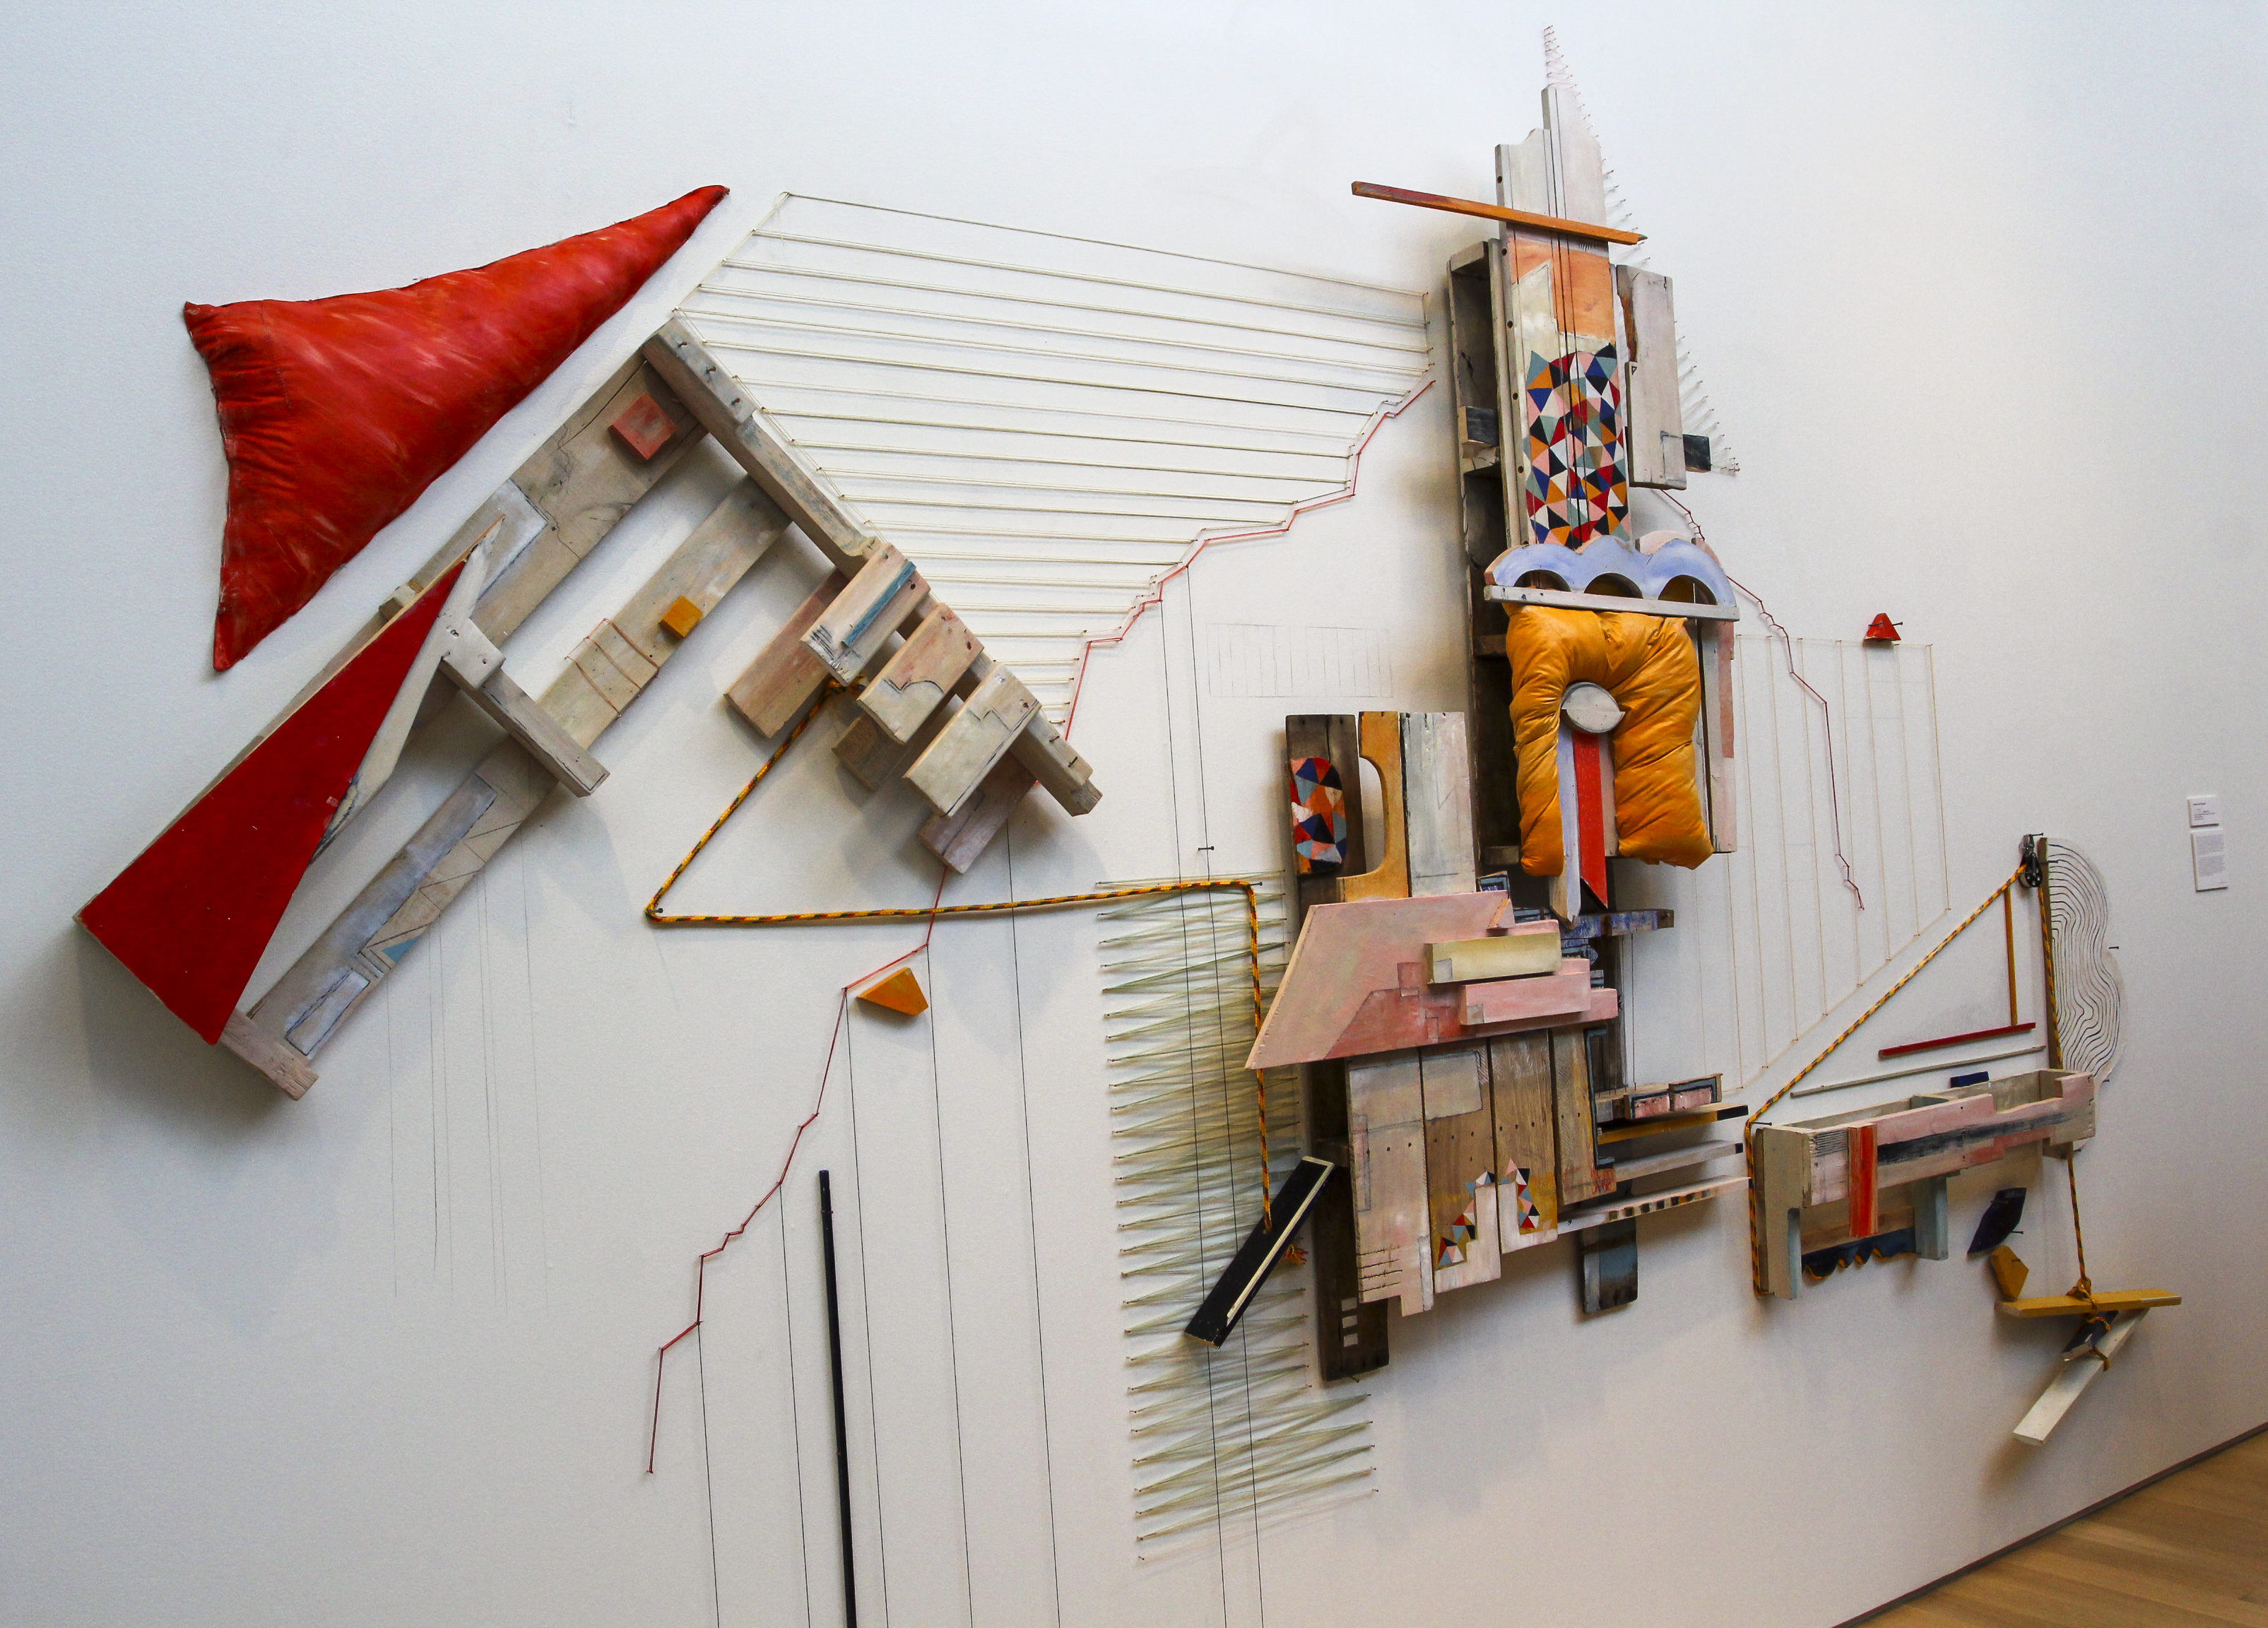 """Constructed from various wooden structures and covered in bright, saturated oranges, yellows and blues, De Pascuale's sculpture commands the viewer's attention. Inspired by the playfulness of Spanish architecture, De Pascuale used color and form to invite the audience into the feeling tof the style. """"They make these huge, beautiful pink and blue spaces that are supposed to match the landscape,"""" she said. """"I like the idea of making something that you look at that makes you feel like you're in that kind of space."""""""